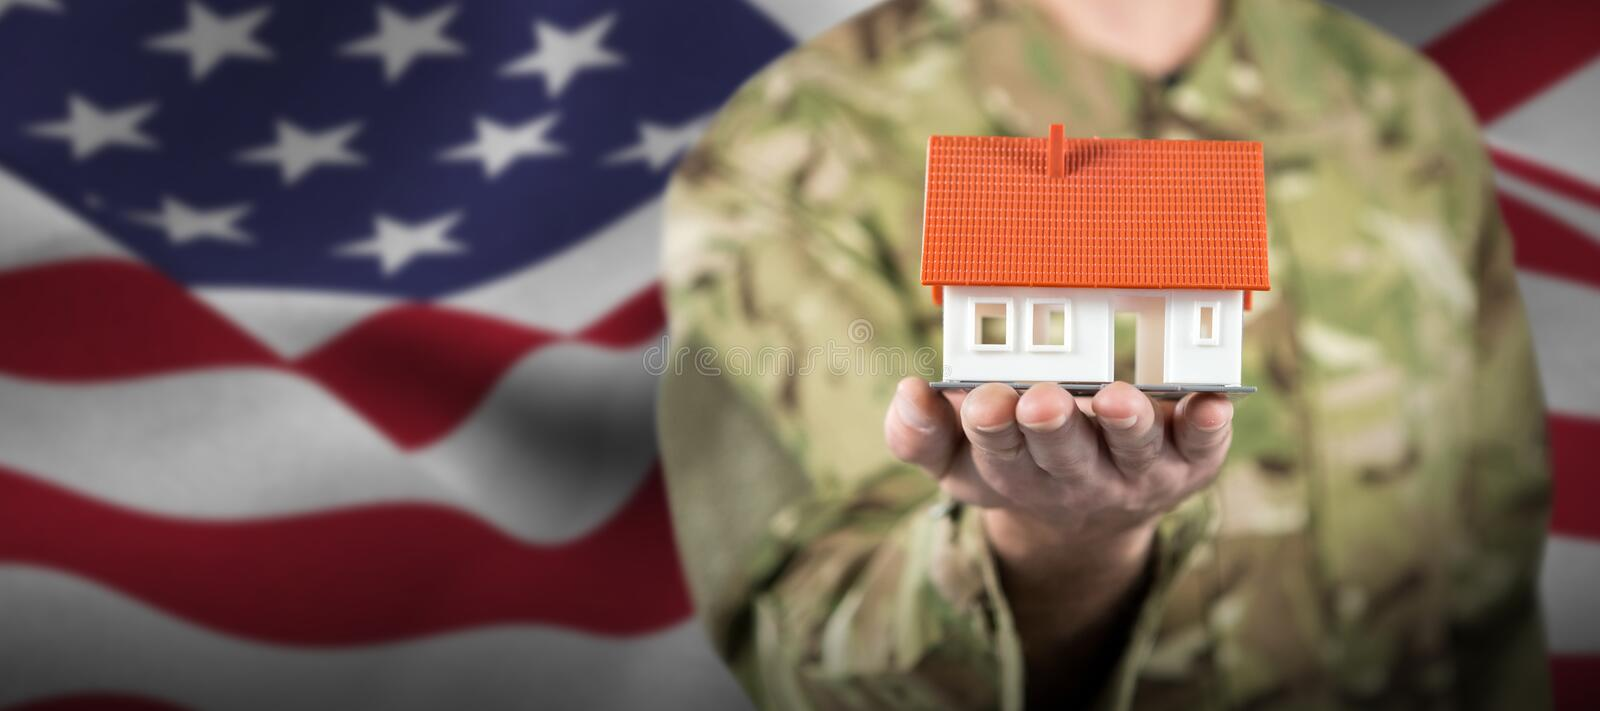 Composite image of mid section of soldier holding model house. Mid section of soldier holding model house against focus on usa flag royalty free stock photo